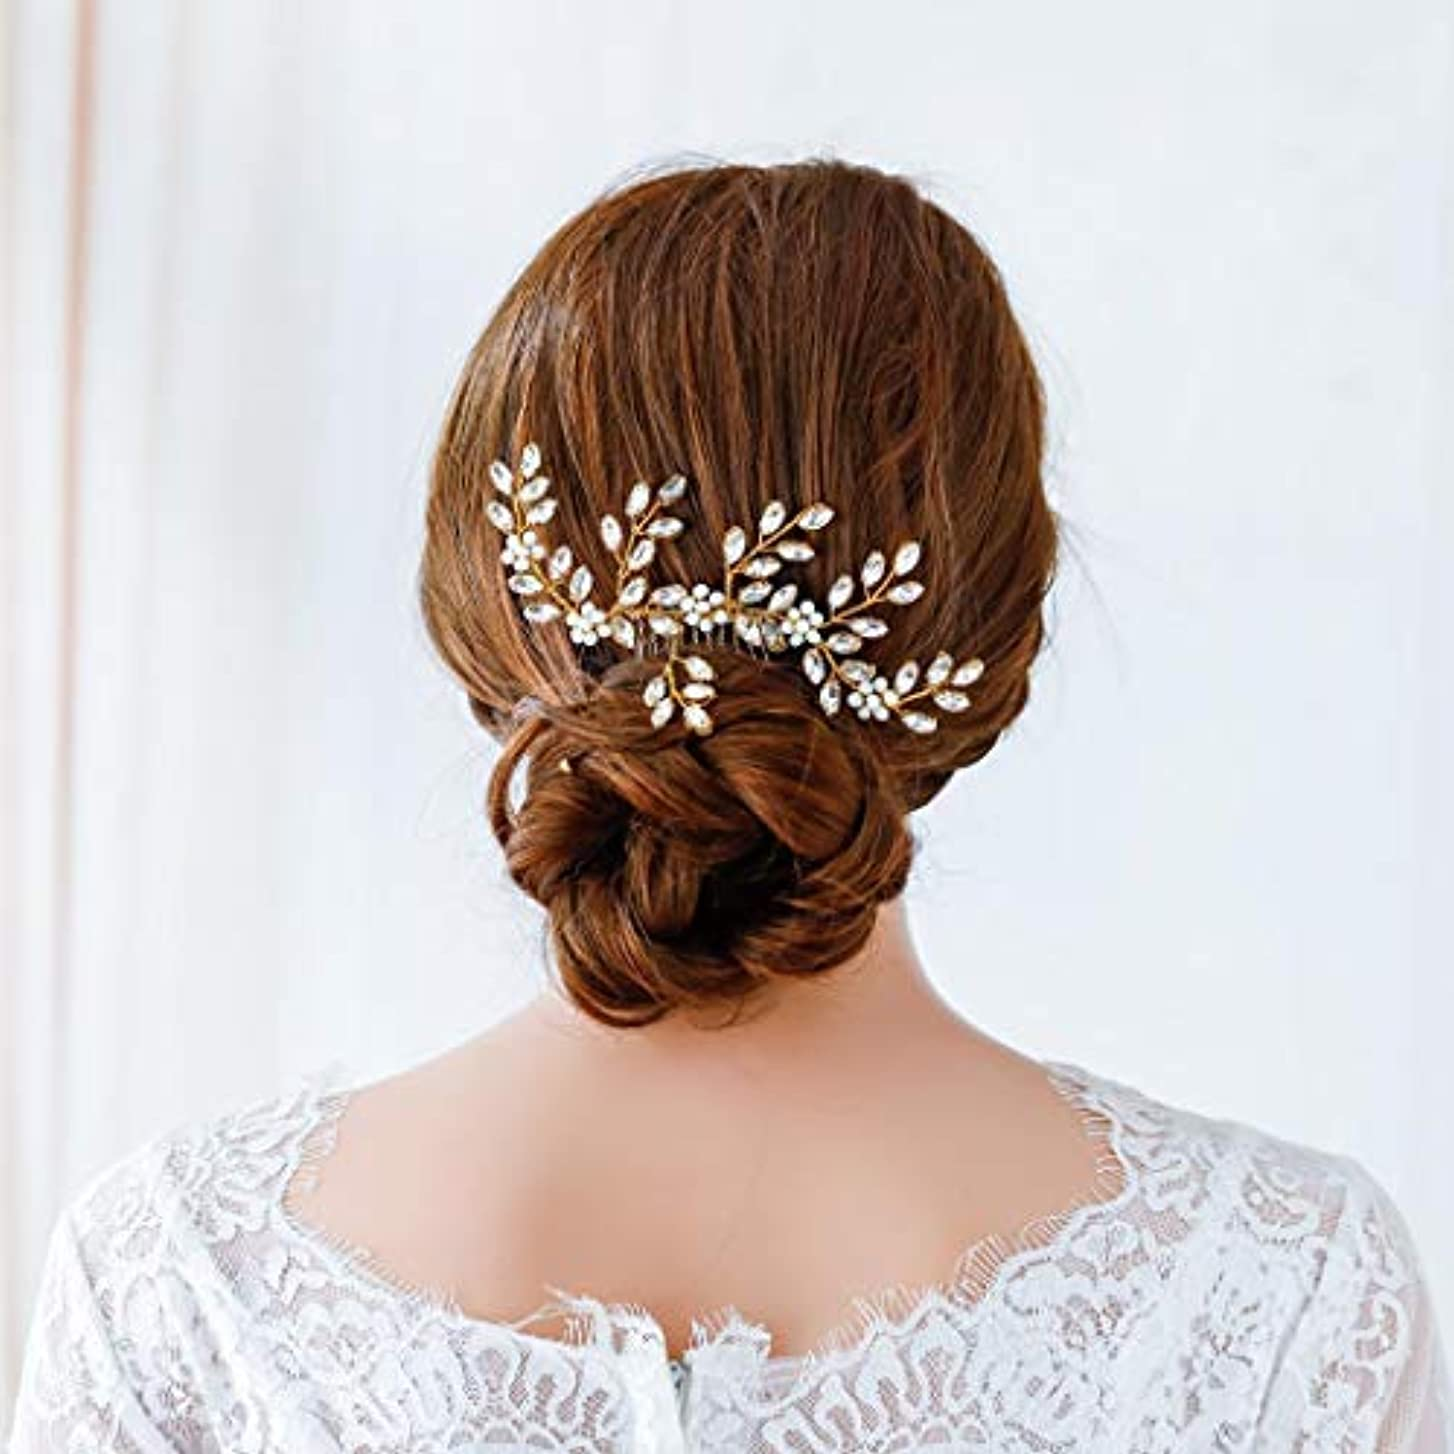 処方する放課後割り当てJovono Bride Wedding Hair Comb Bridal Crystal Hair Accessories Beaded Headpieces for Women and Girls (Gold) [並行輸入品]